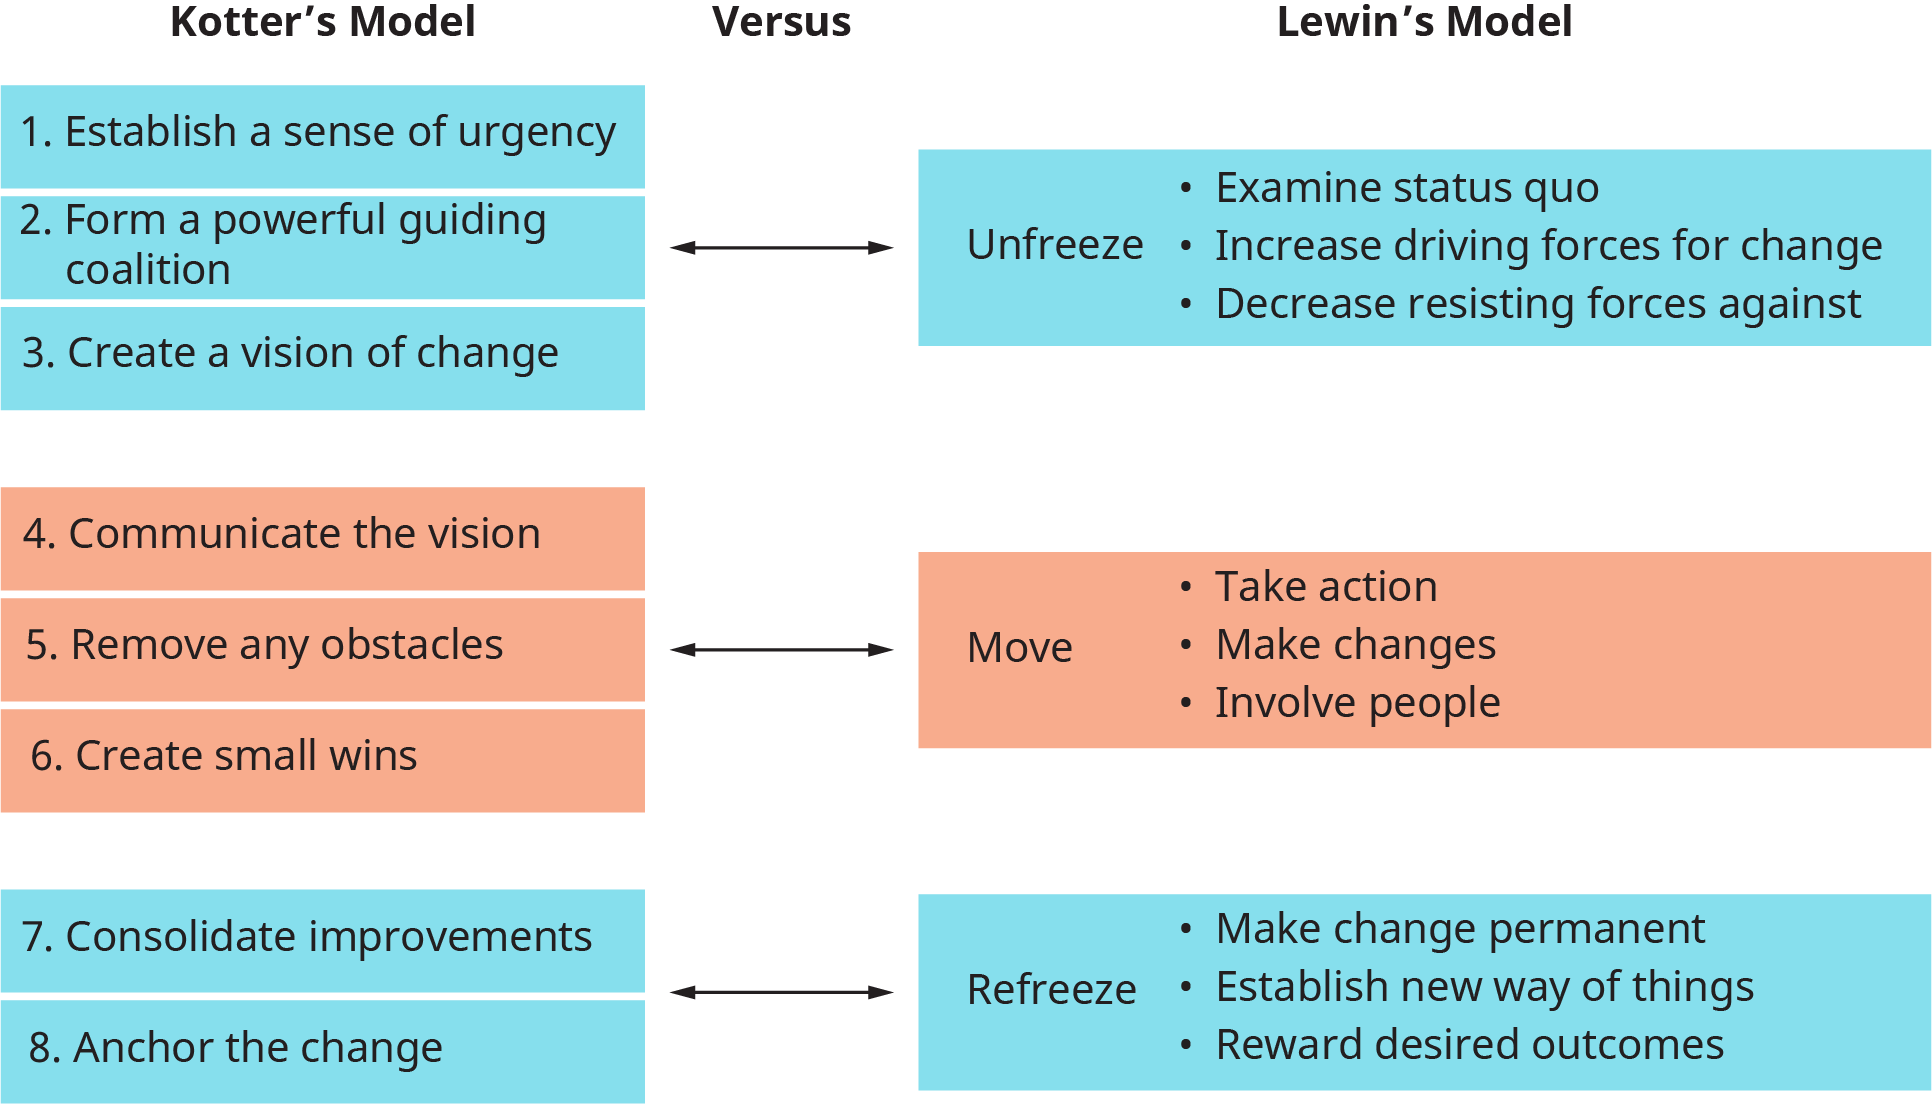 A diagram shows the comparison between Kotter's Change Model and Lewin's Change Model.